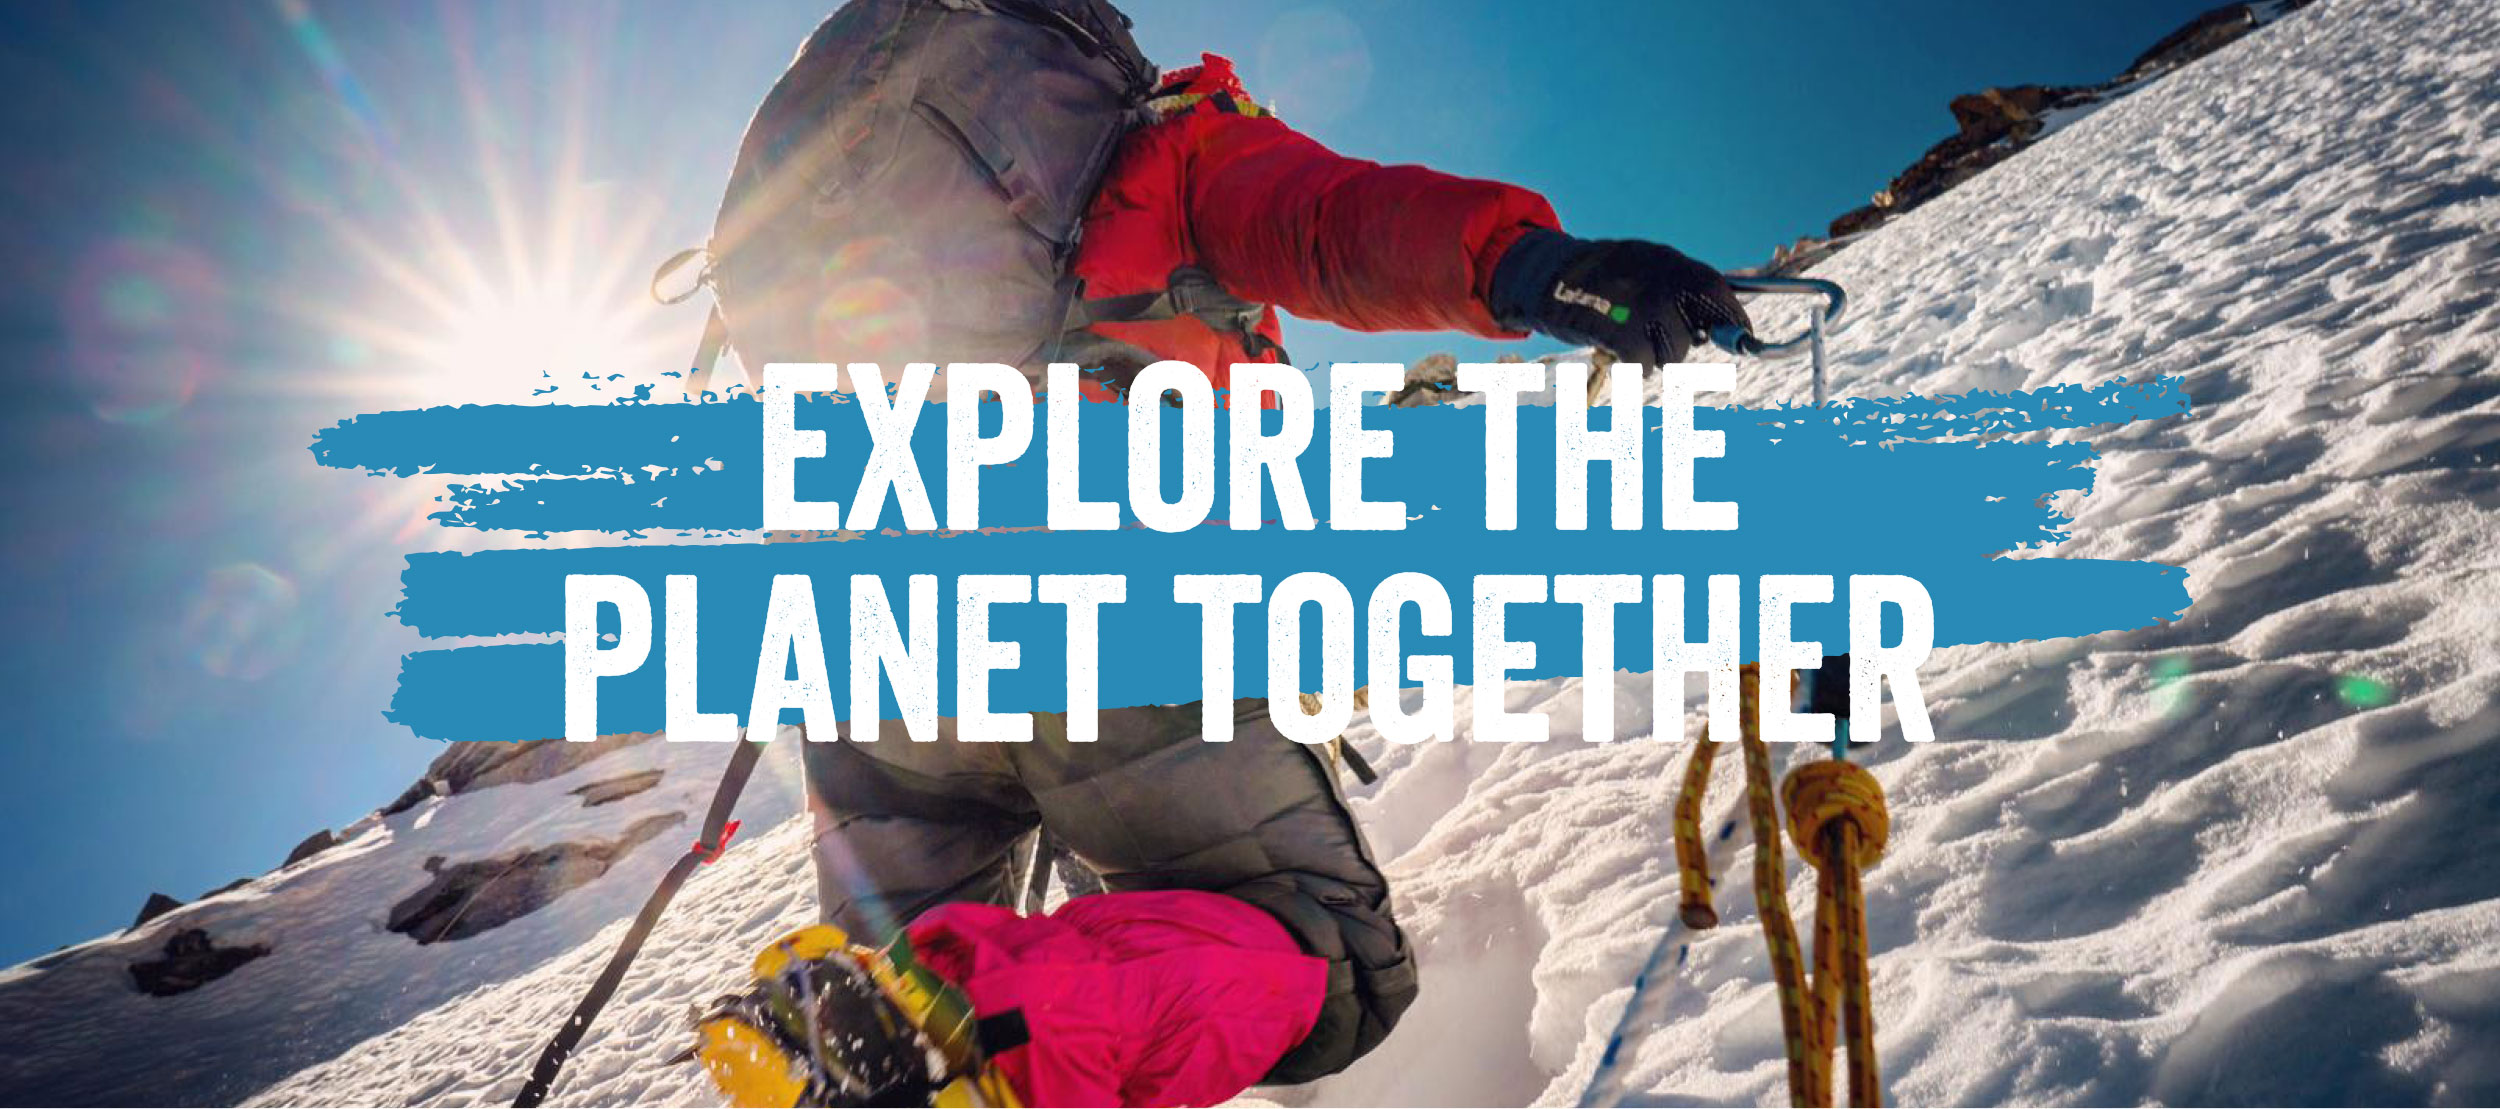 Explore The Planet Together